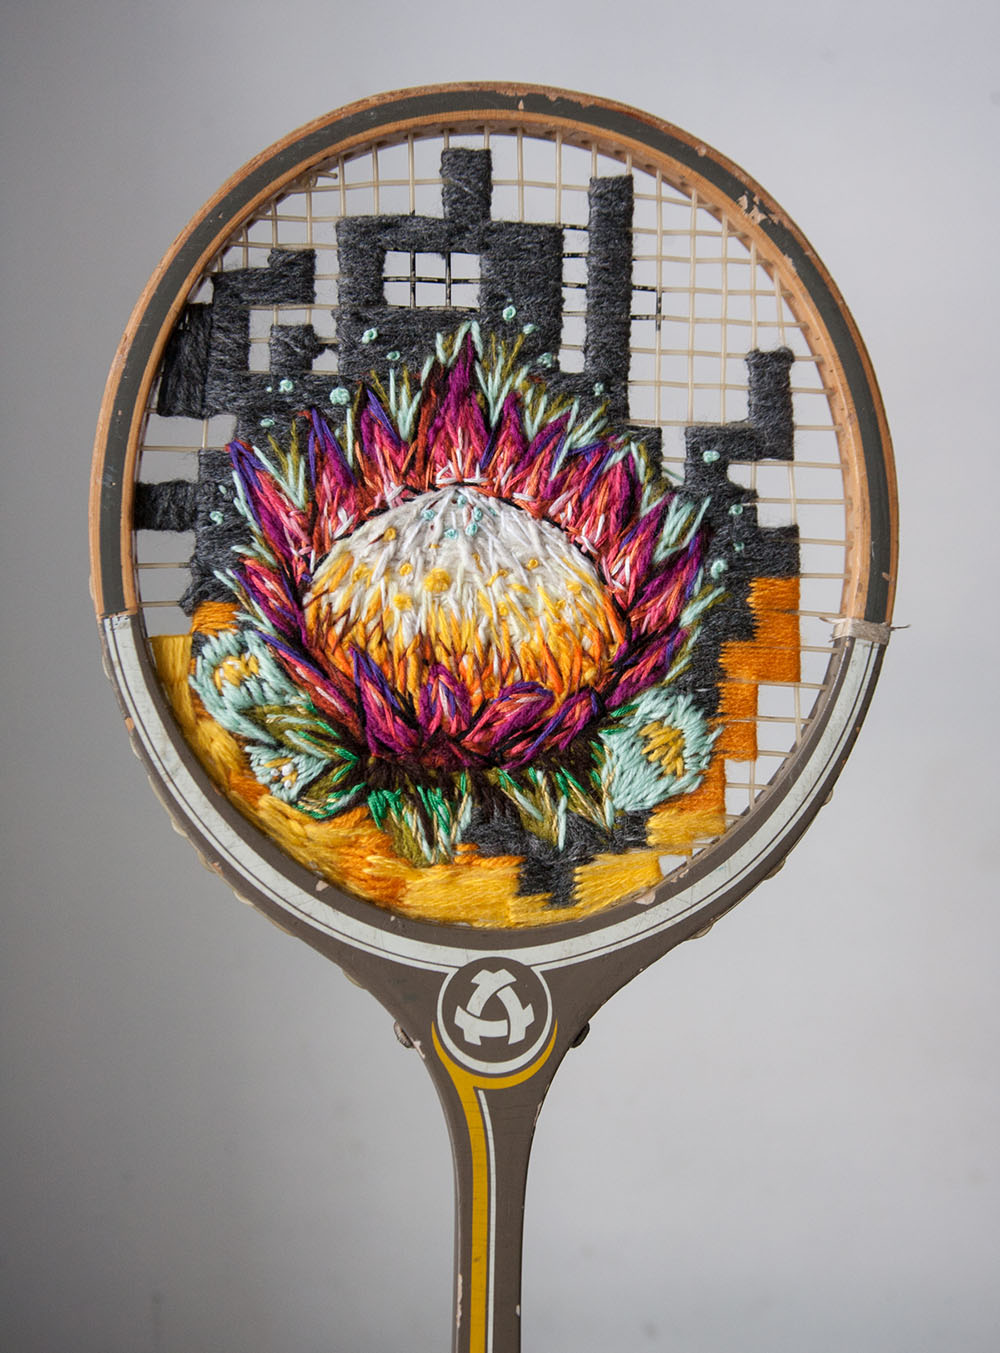 outstyled-tennis-racket-embroidery-3.jpg